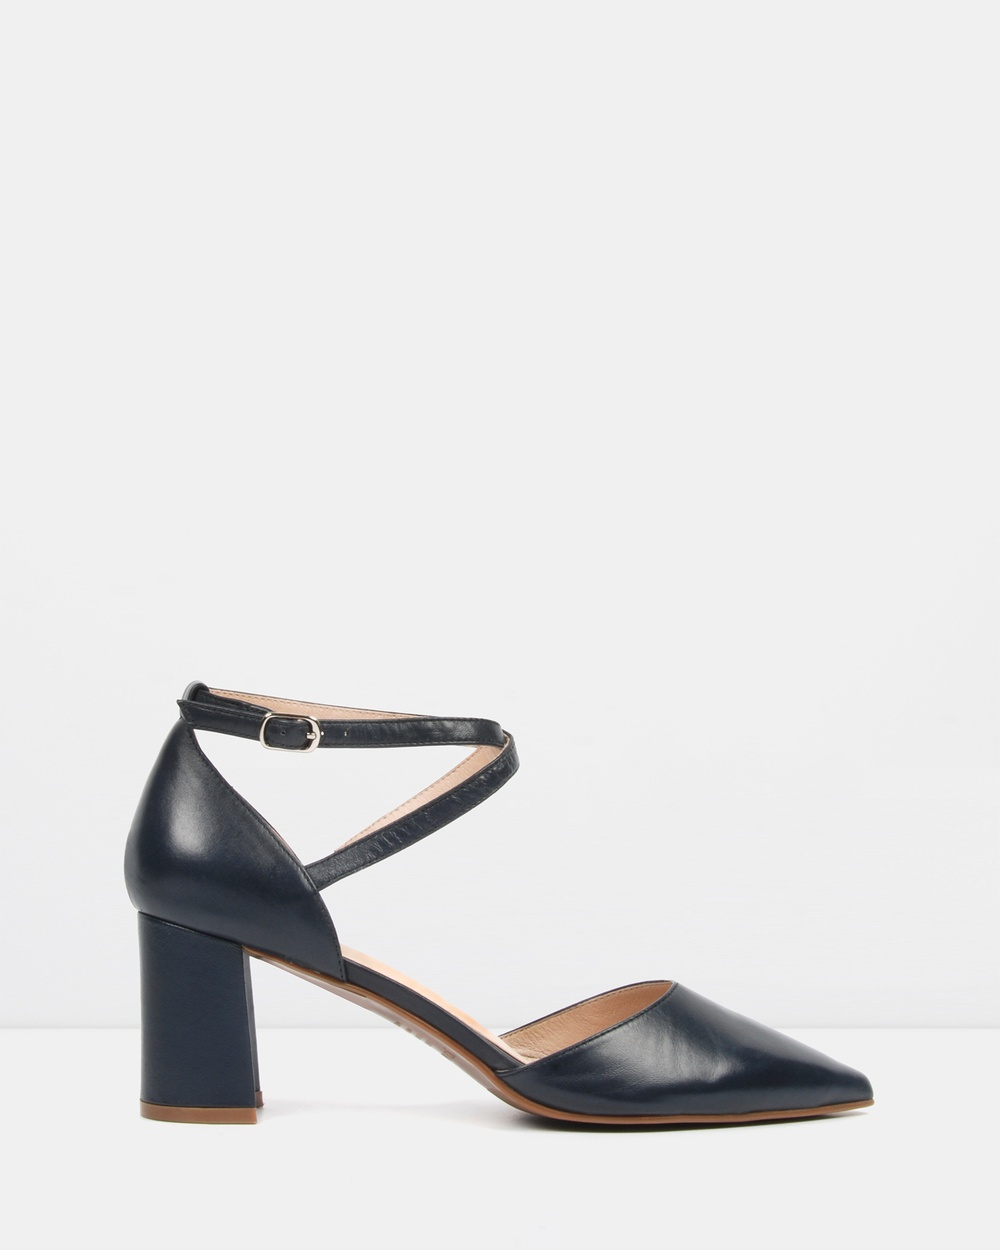 Jo Mercer Iluka Mid Heels Mid-low heels Navy Leather Iluka Mid Heels